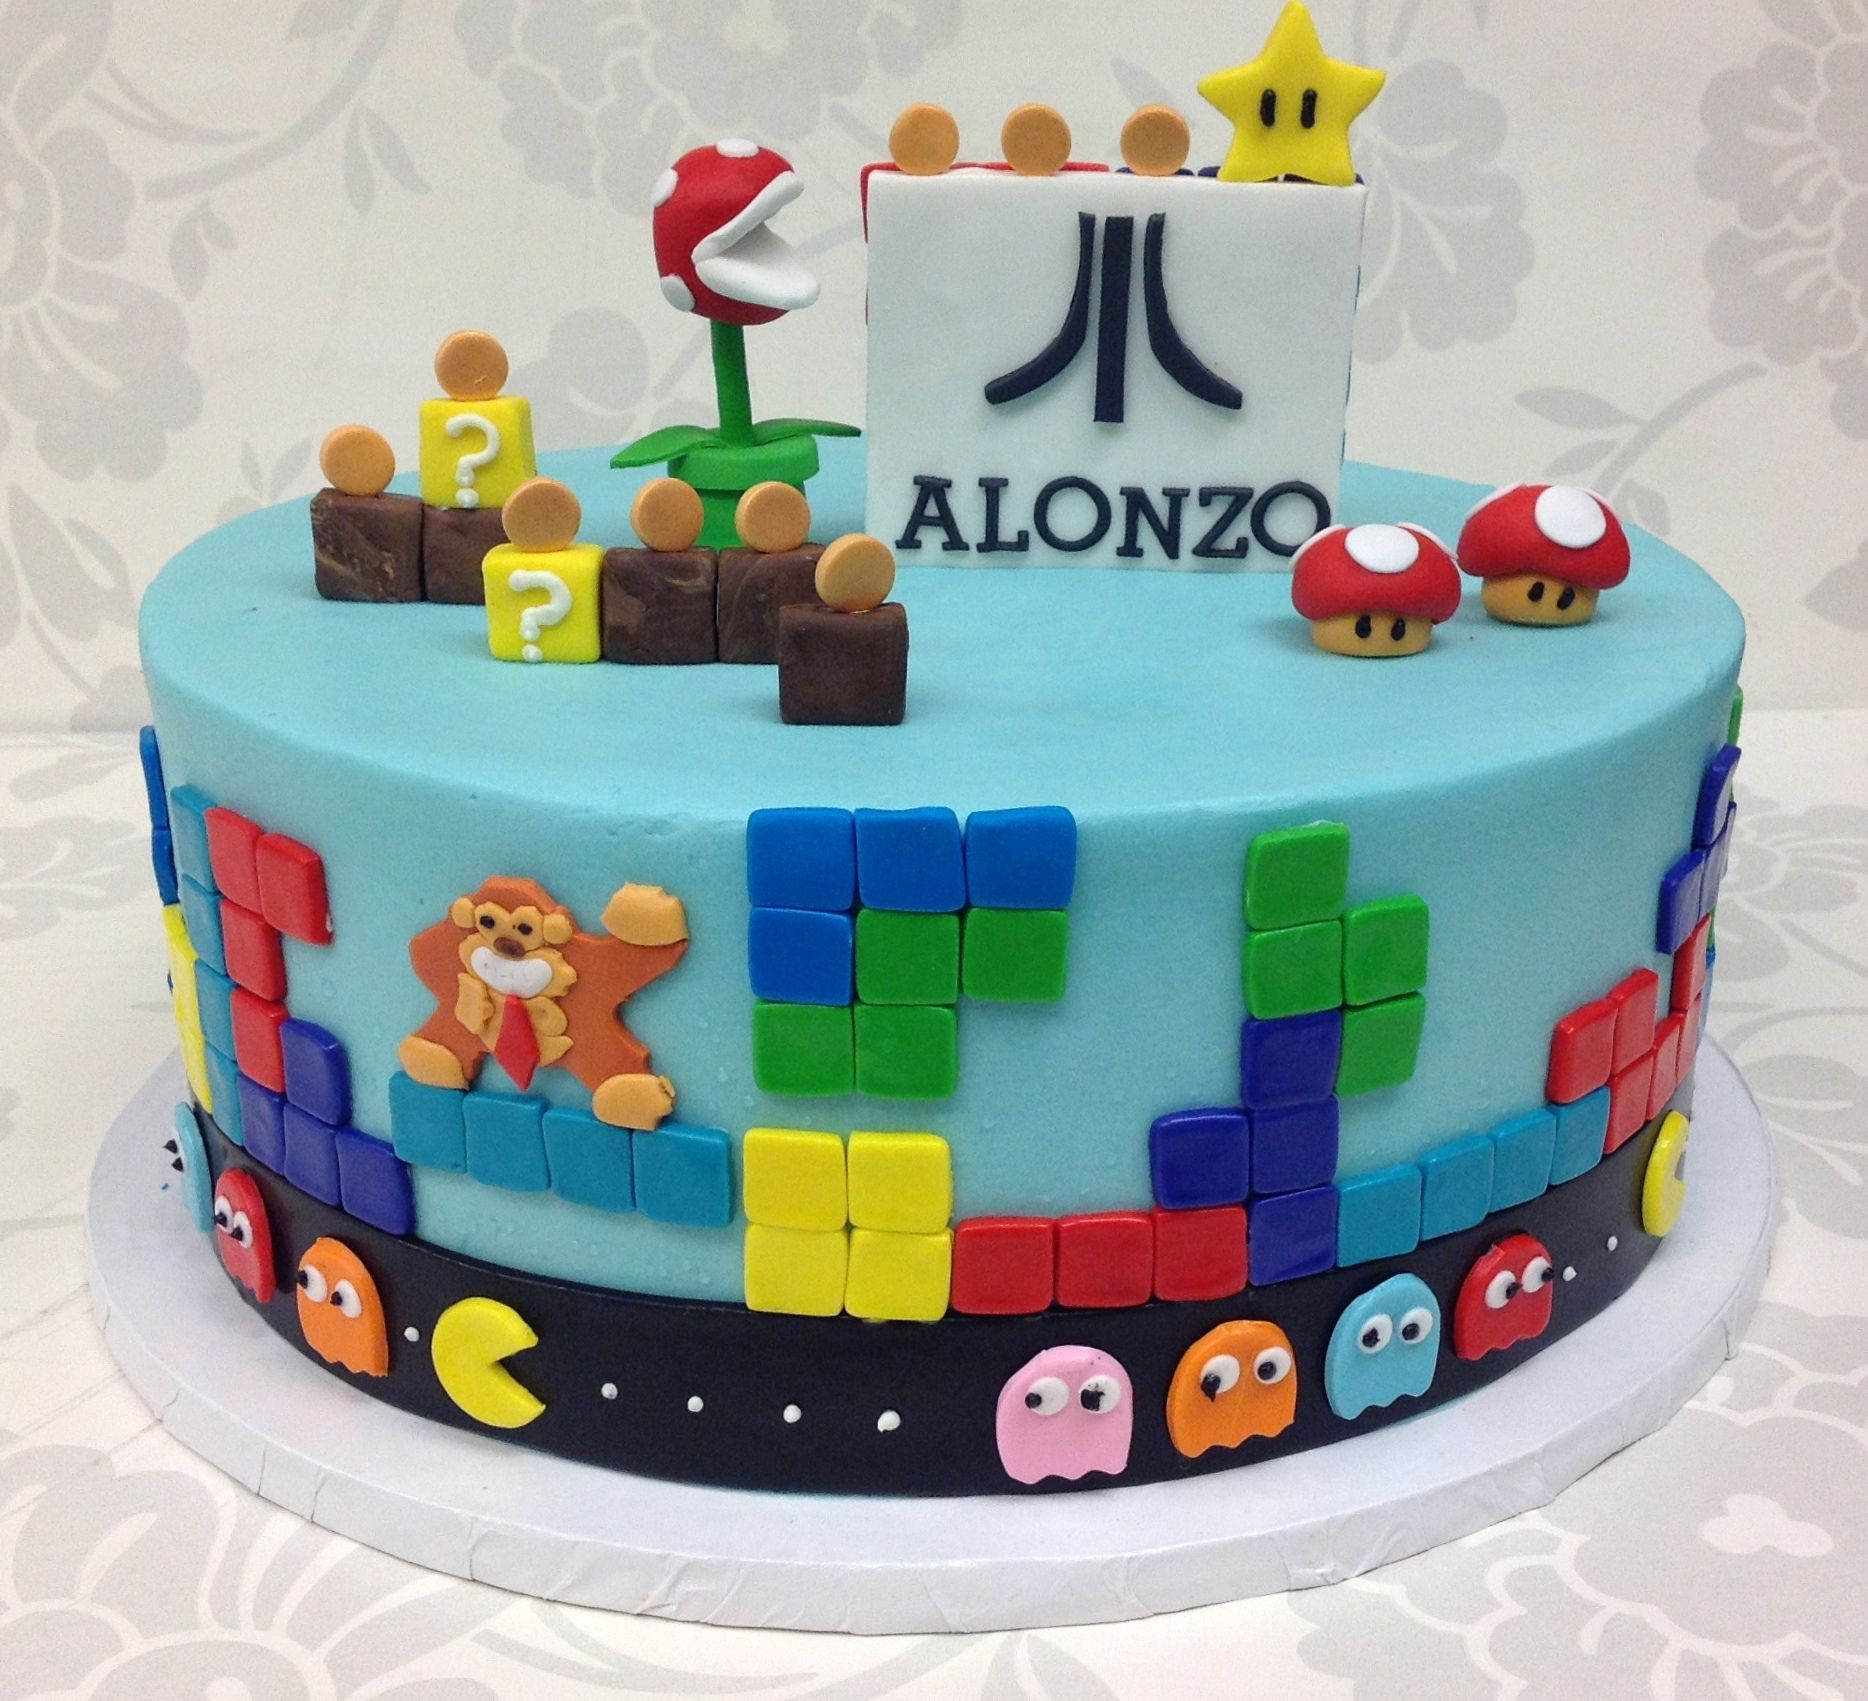 80's Video Game Themed Cake From The Cupcake Shoppe In